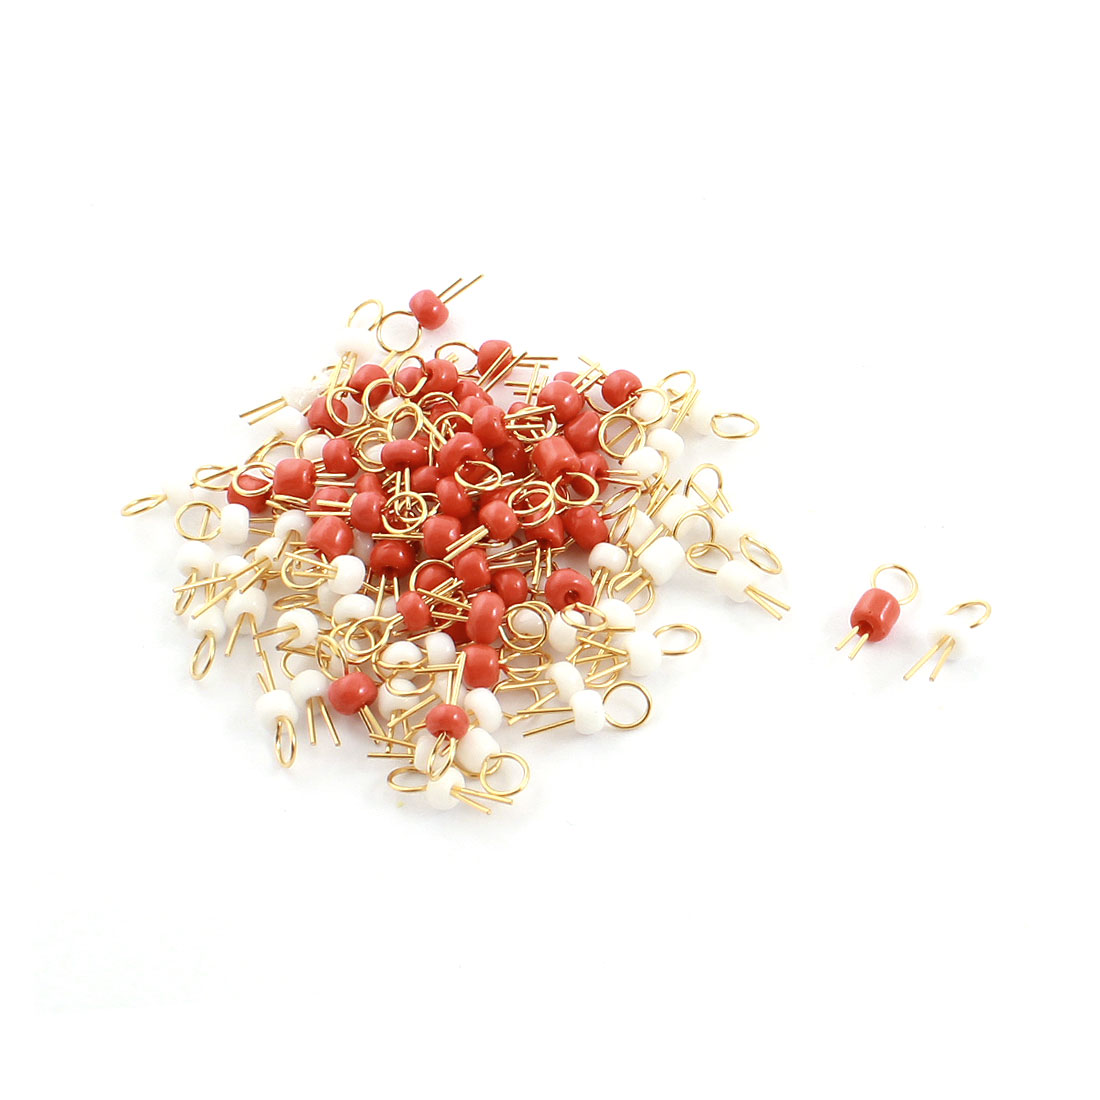 Unique Bargains 100PCS Red + White Bead Electronic Soldering Probe PCB Test Endpoint Pin